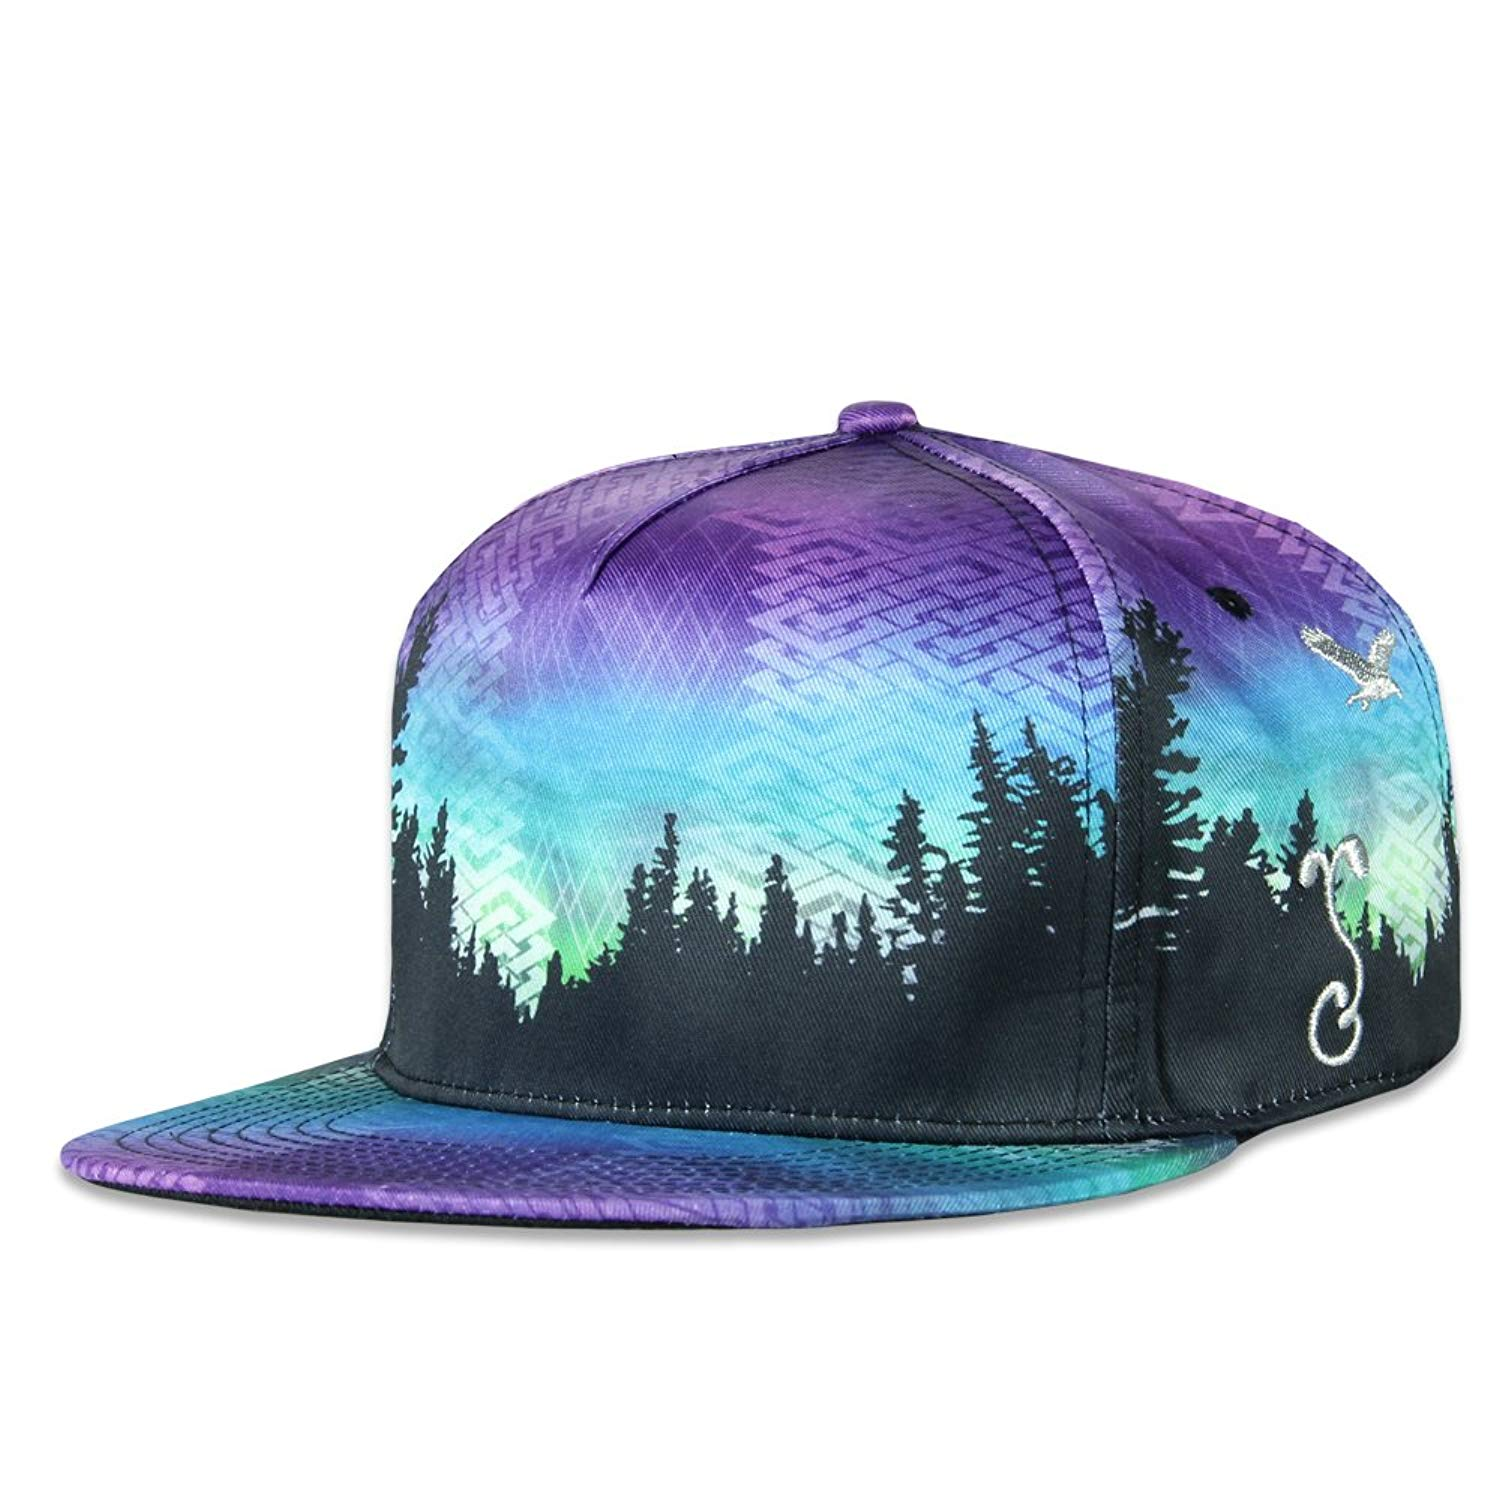 2eabe32b836 Get Quotations · Grassroots California Camproots Purple V2 Snapback